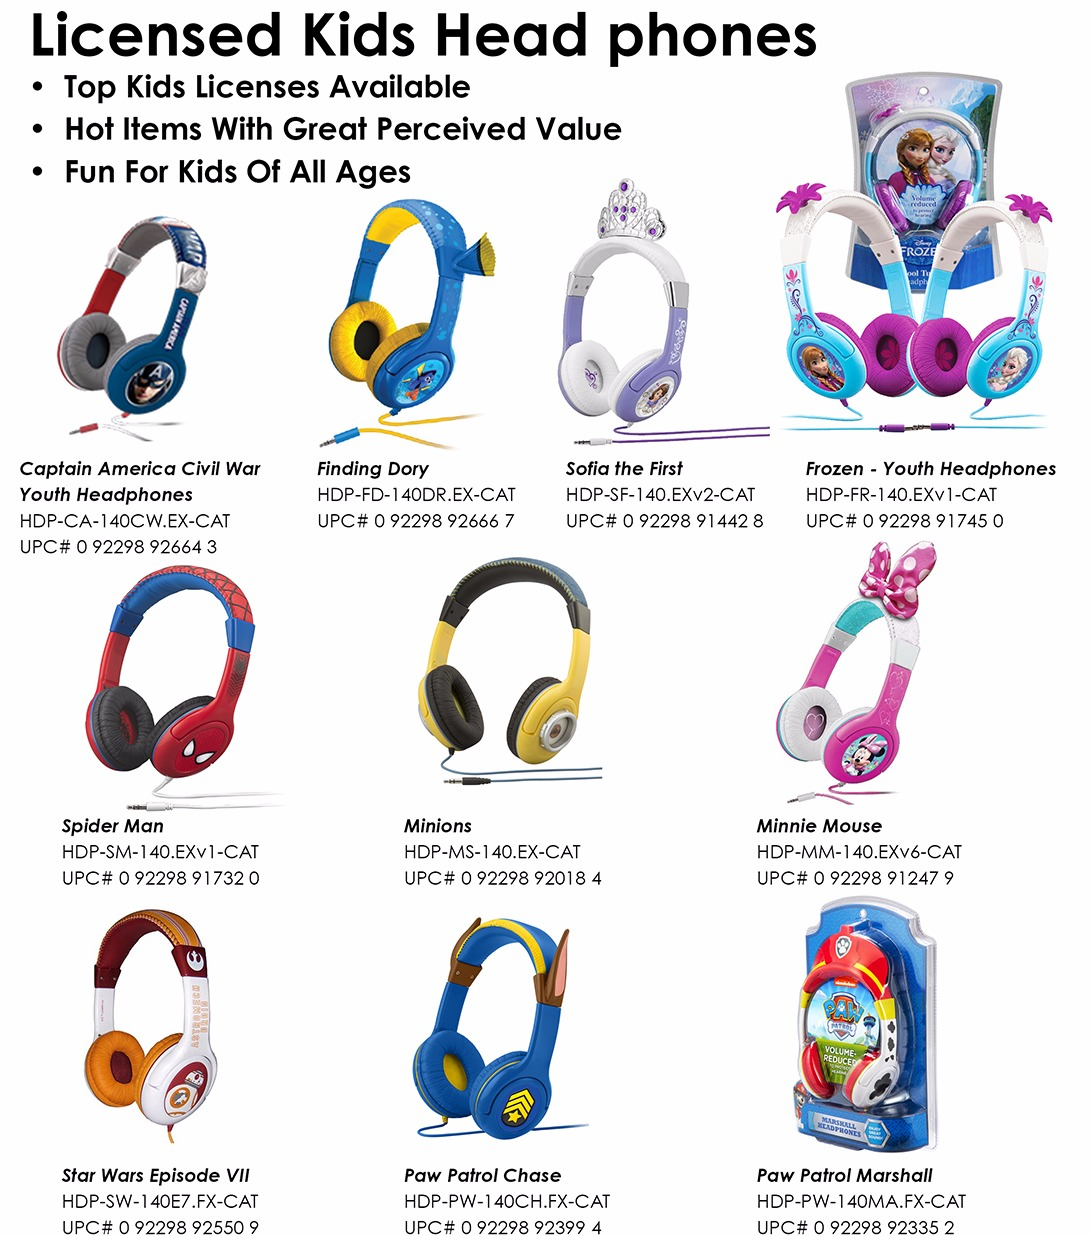 Head phones Licensed Kids_edited